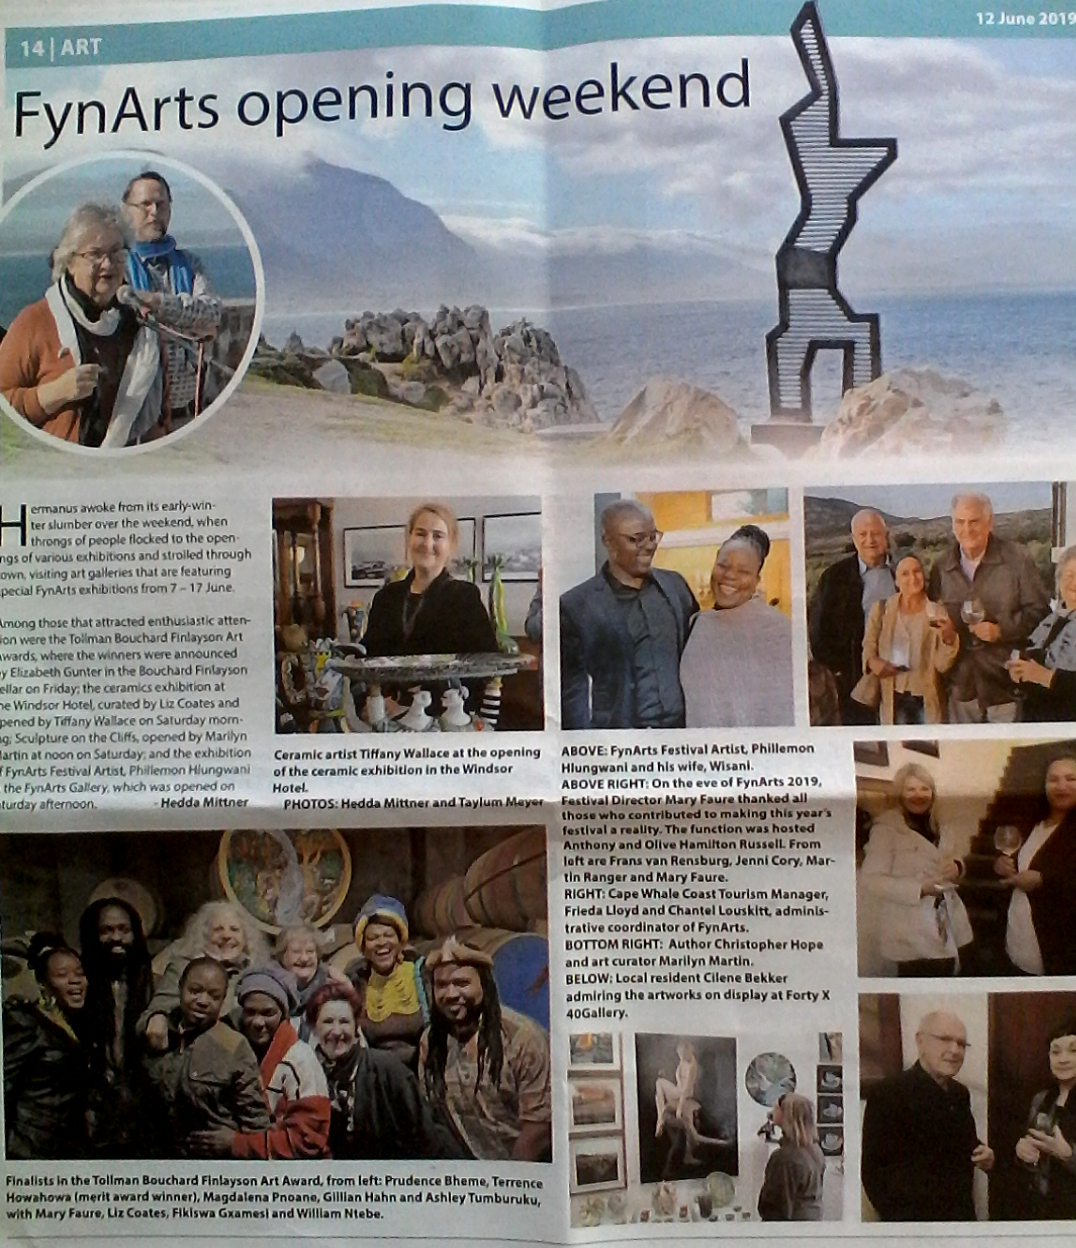 2019 - Fynarts group exhibition at Bouchard Finlayson.